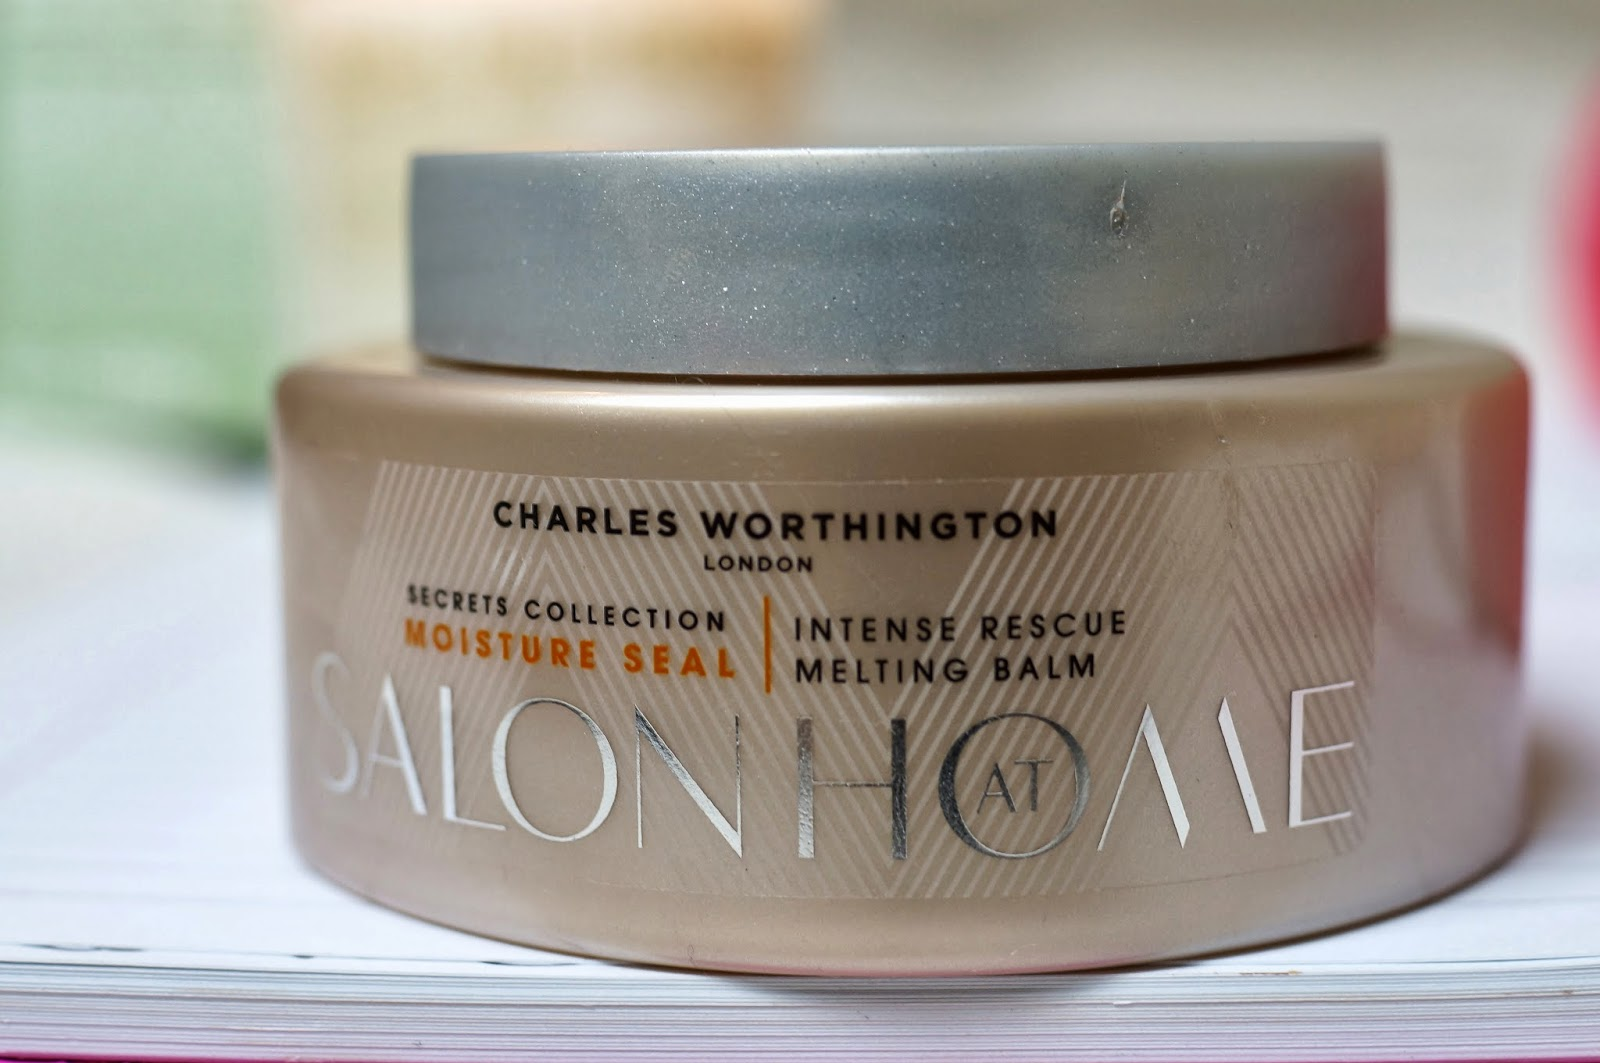 Charles Worthington Intense Rescue Melting Balm